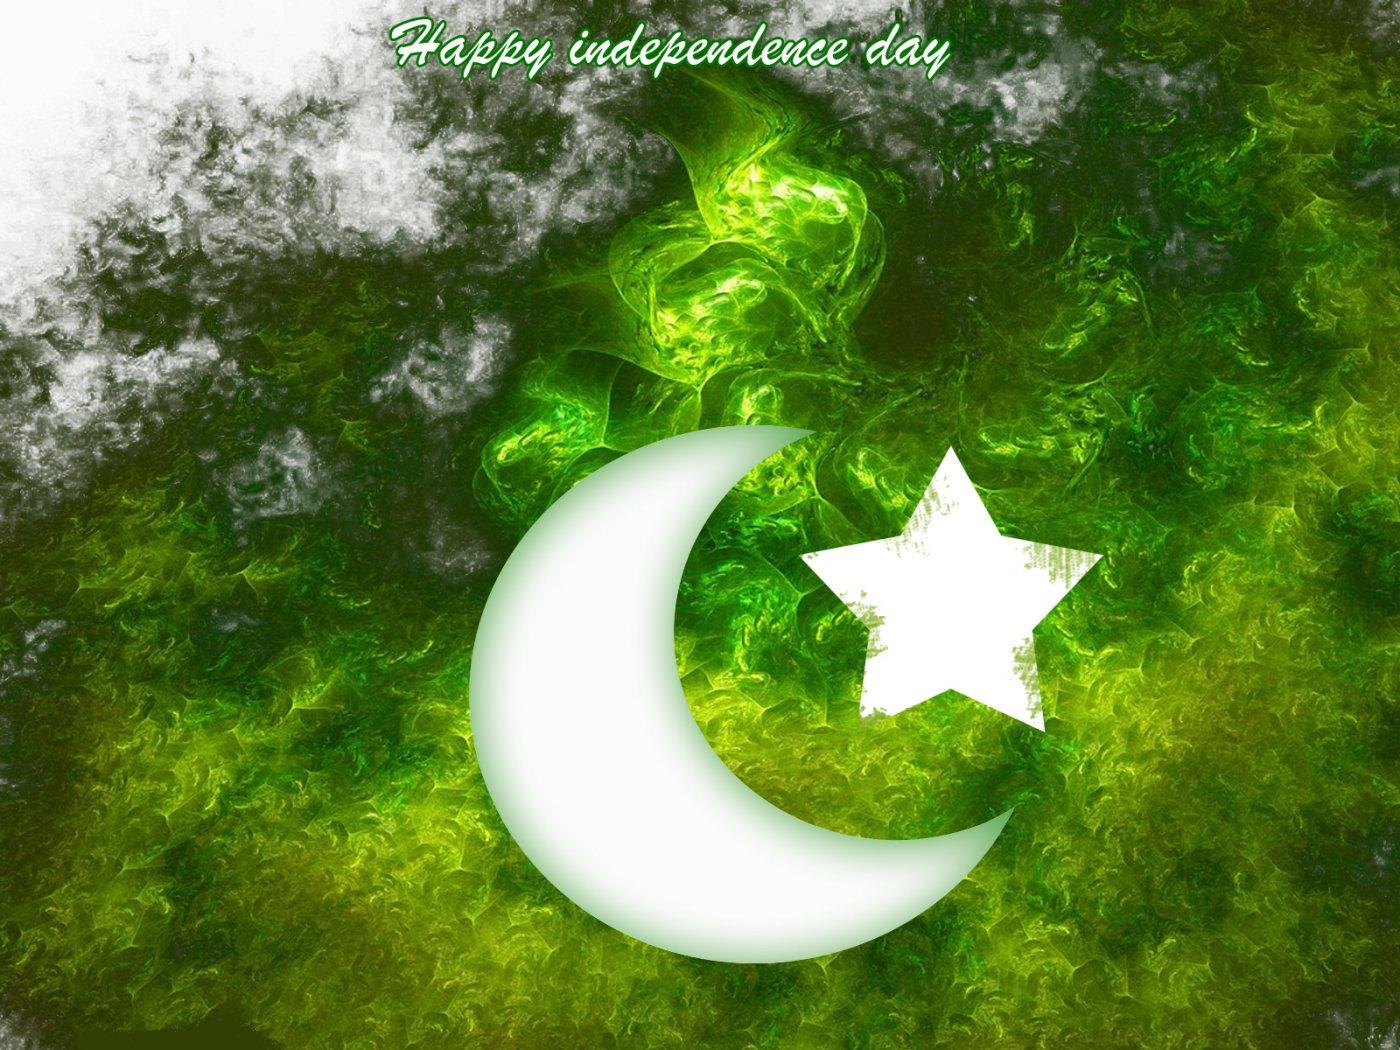 Pakistan Independence Day Painting Art Wallpapers My Site